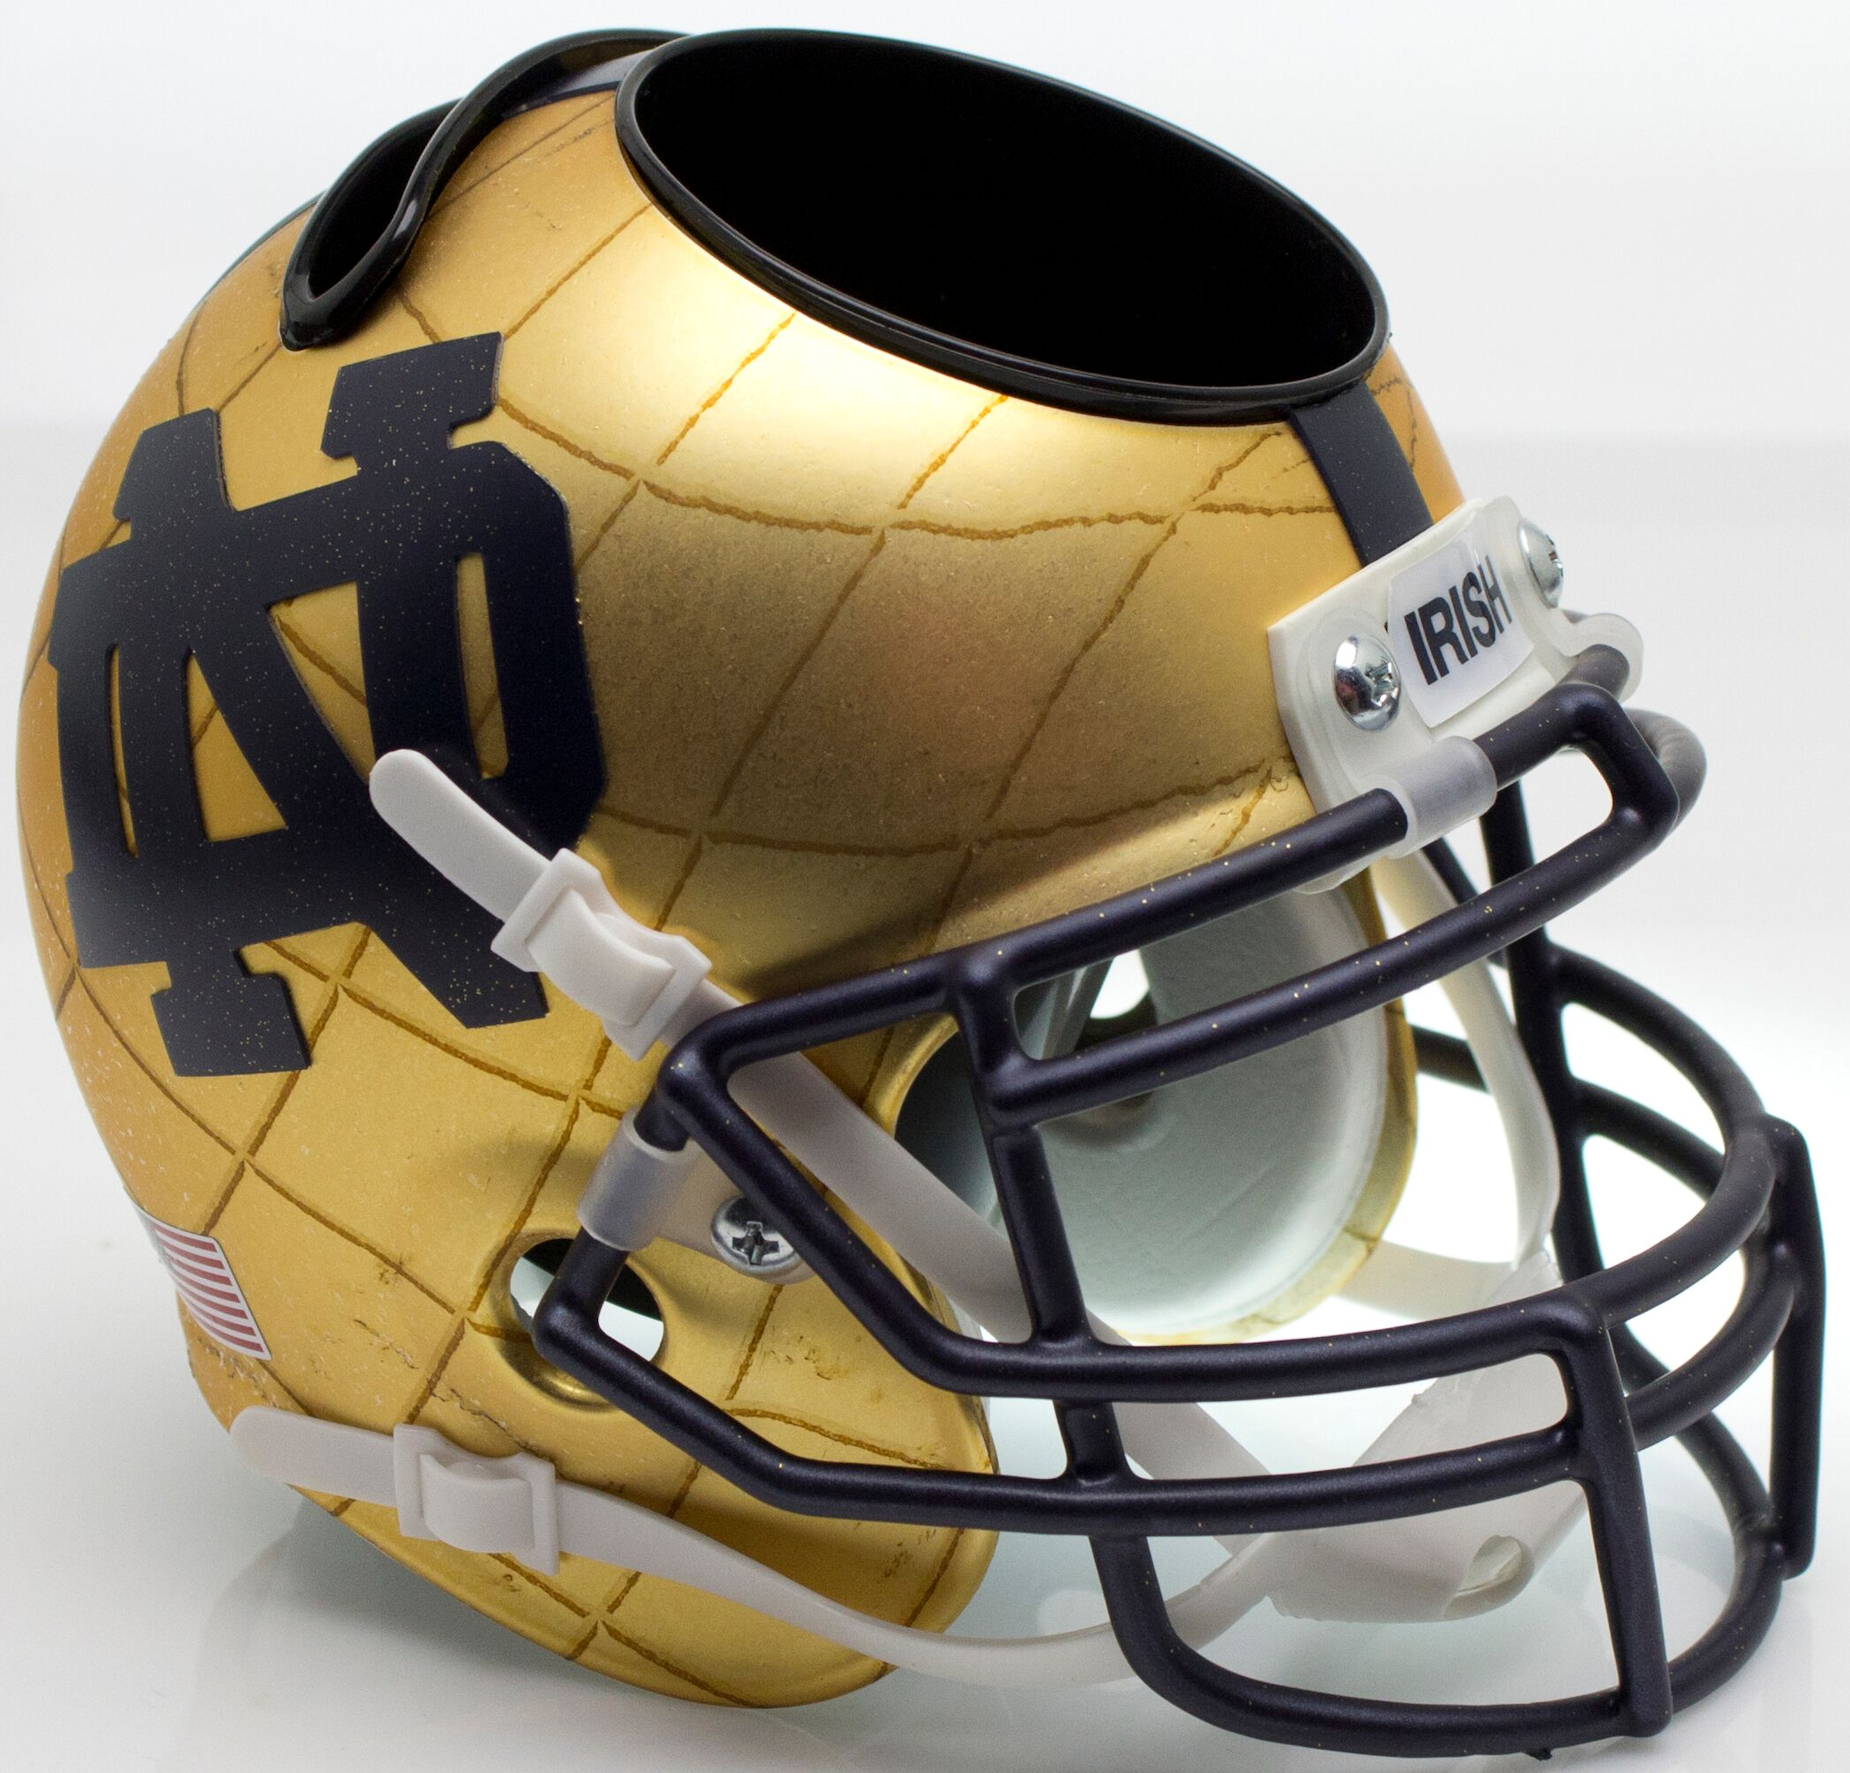 Notre Dame Fighting Irish Miniature Football Helmet Desk Caddy <B>2014 HydroSkin Indianapolis</B>